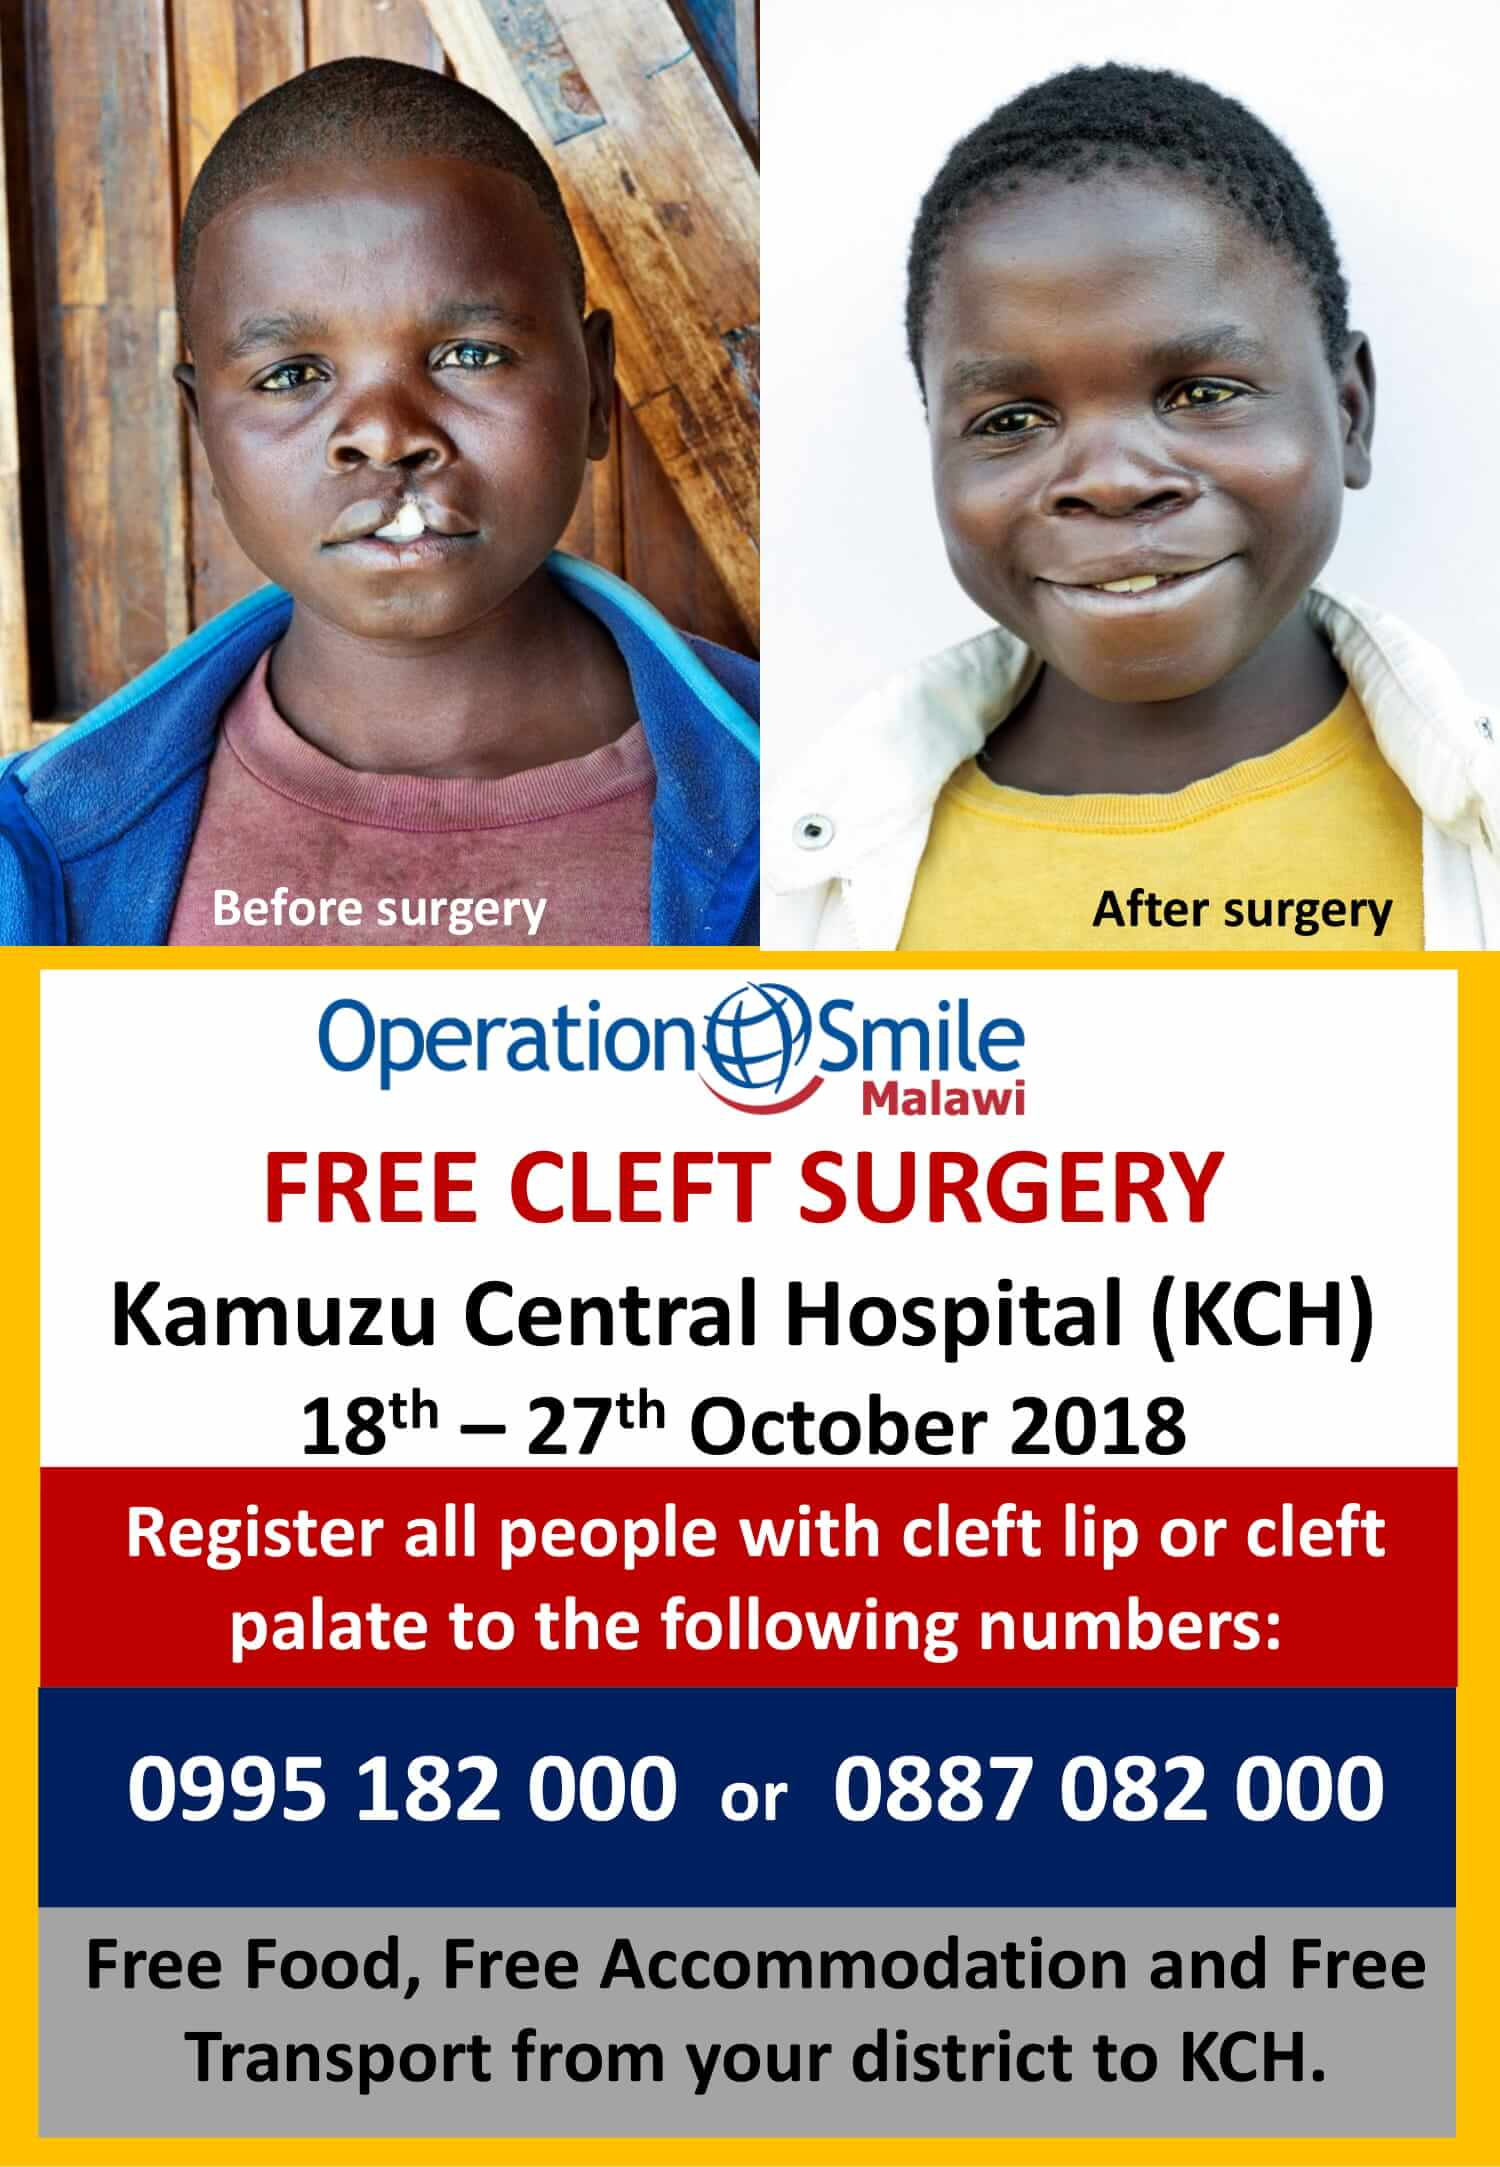 Operation Smile - Free Cleft Surgery fro...